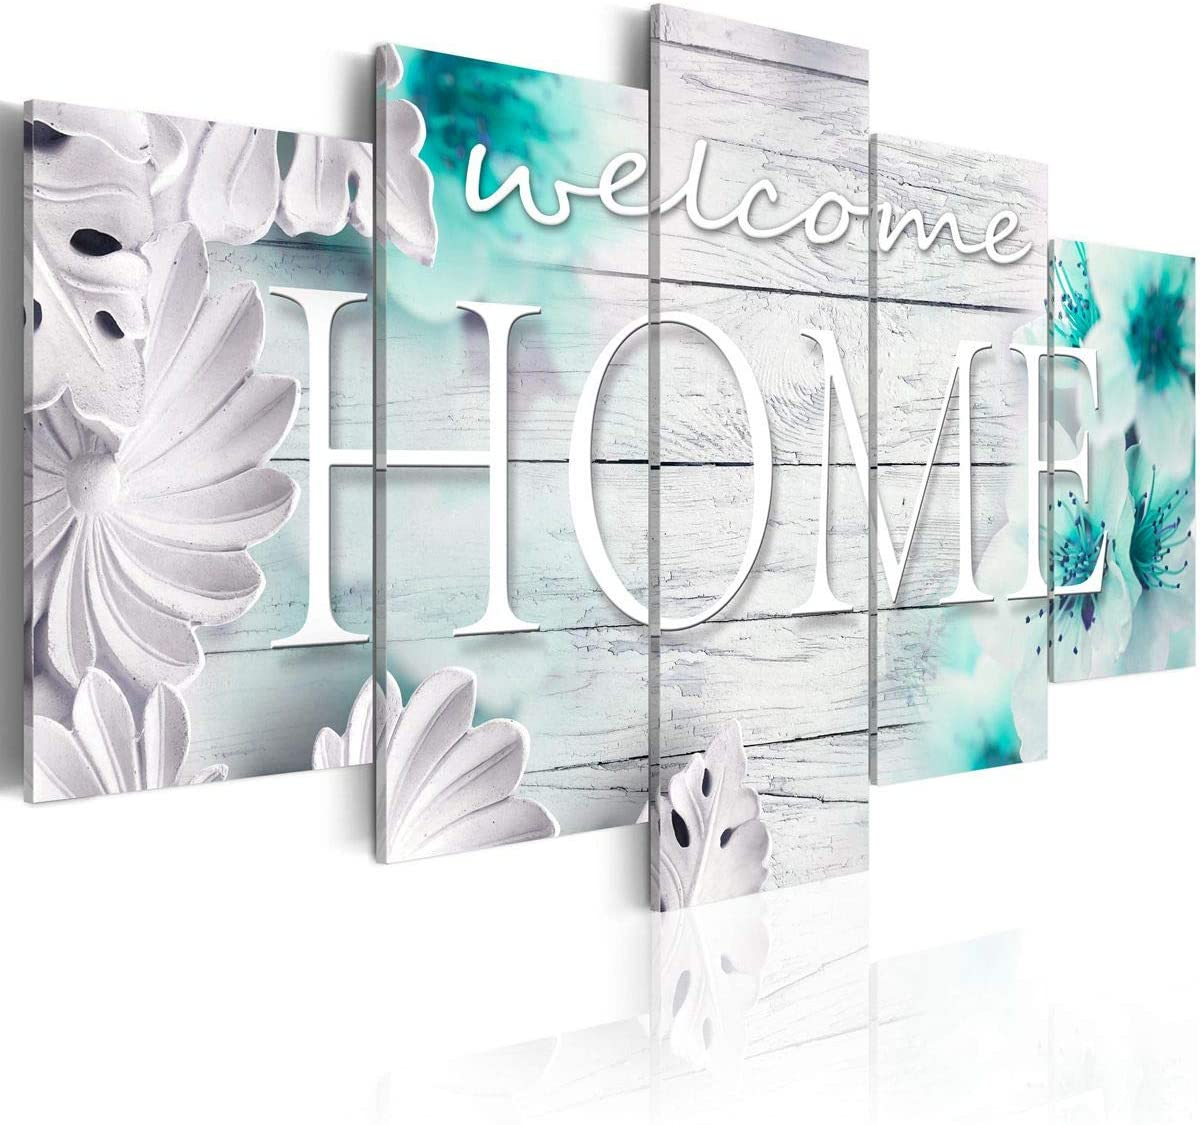 """Wall Art """"Welcome Home"""" Sign Turquoise Vintage Sweet Decor Modern Abstract 5 Panels Picture Canvas Floral Decoration for Housewarming Living Room 40"""" x 20"""""""